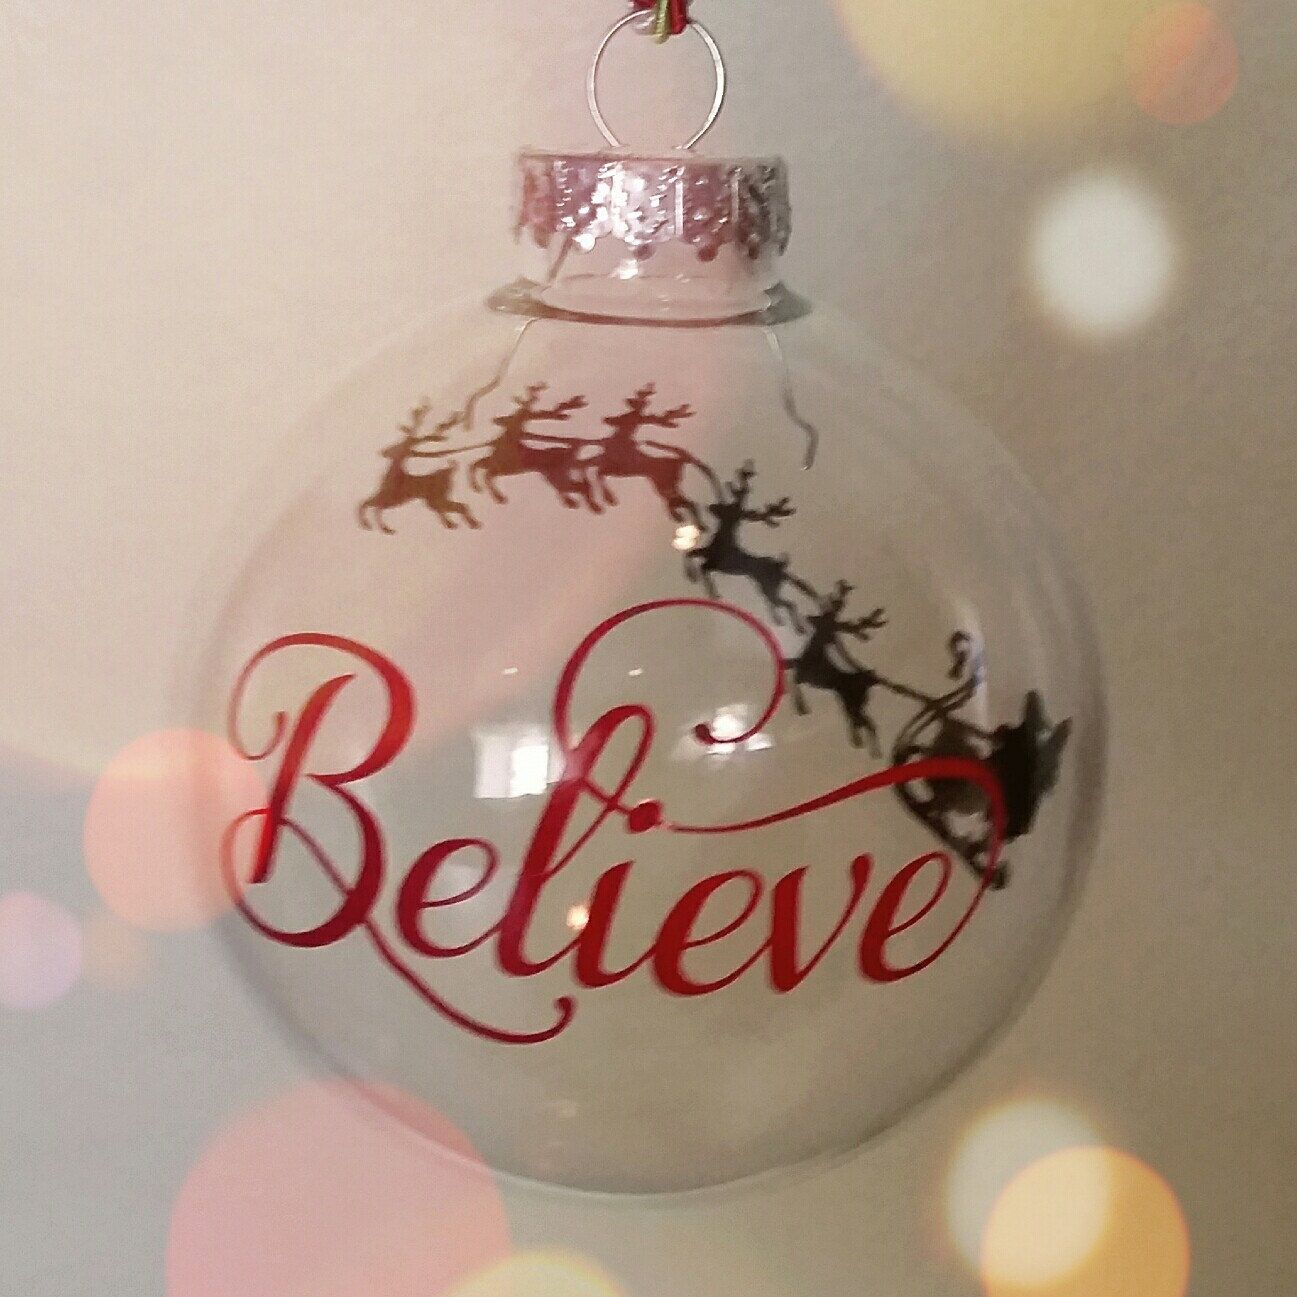 Believe In The Spirit Of Christmas With This Clear Glass Ornaments It Is One Of My Christmas Ornament Crafts Christmas Ornaments Christmas Ornaments Homemade